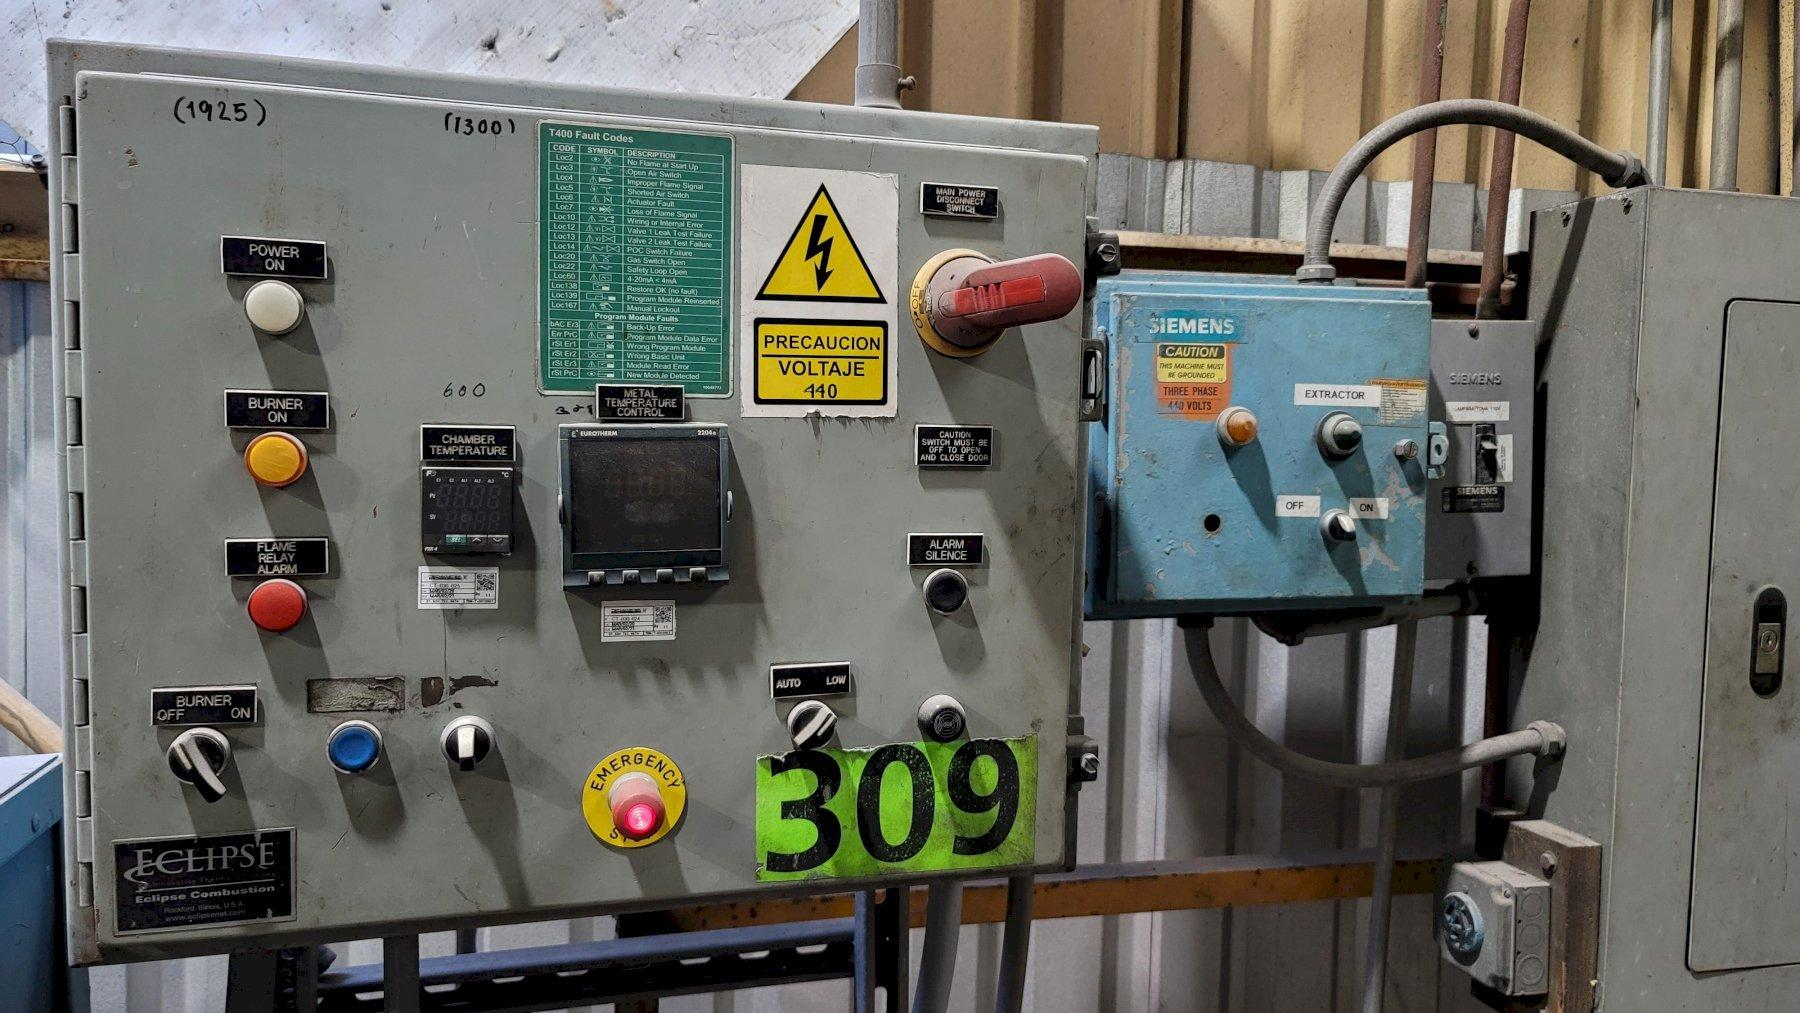 Morgan model bt 1300r 1300# gas fired tilting furnace with gas system and controls